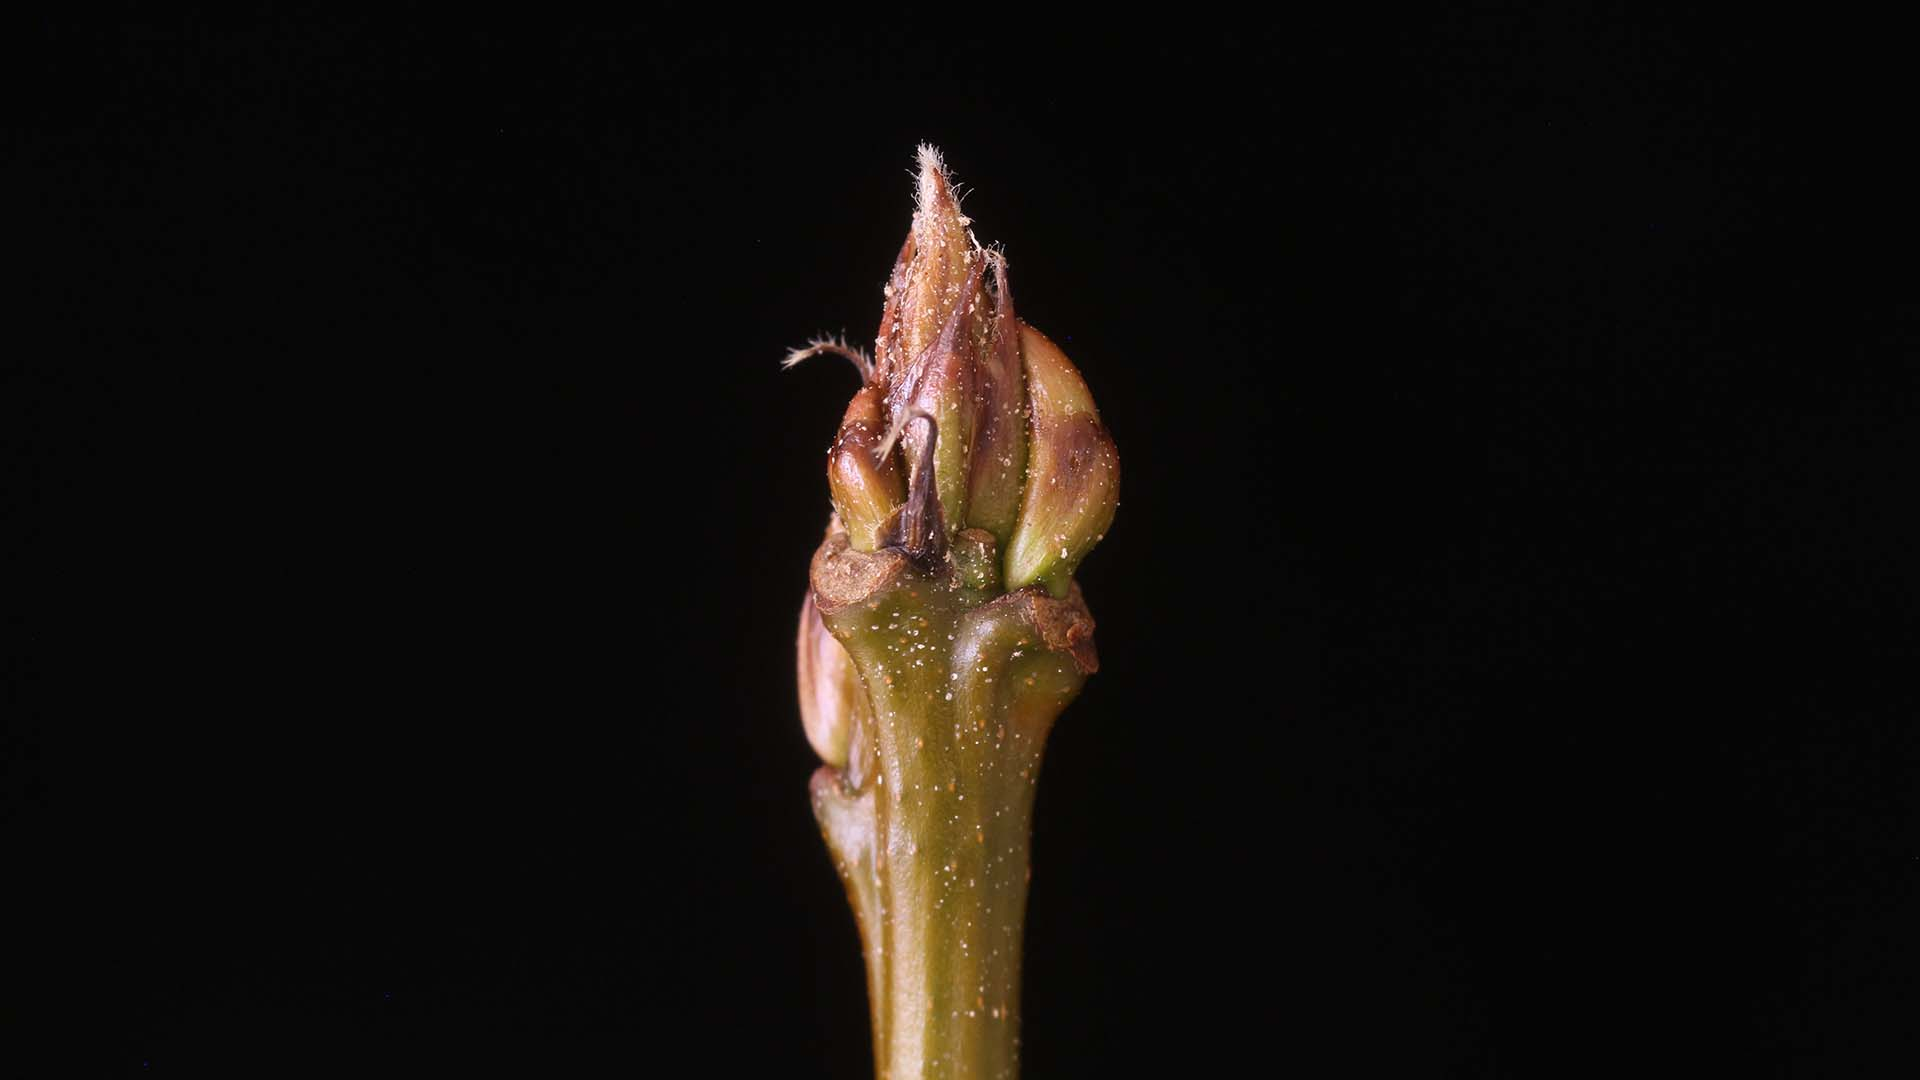 Bud from the model organism hybrid aspen (Populus tremula x Populus tremuloides); Photo taken by Pal Miskolczi